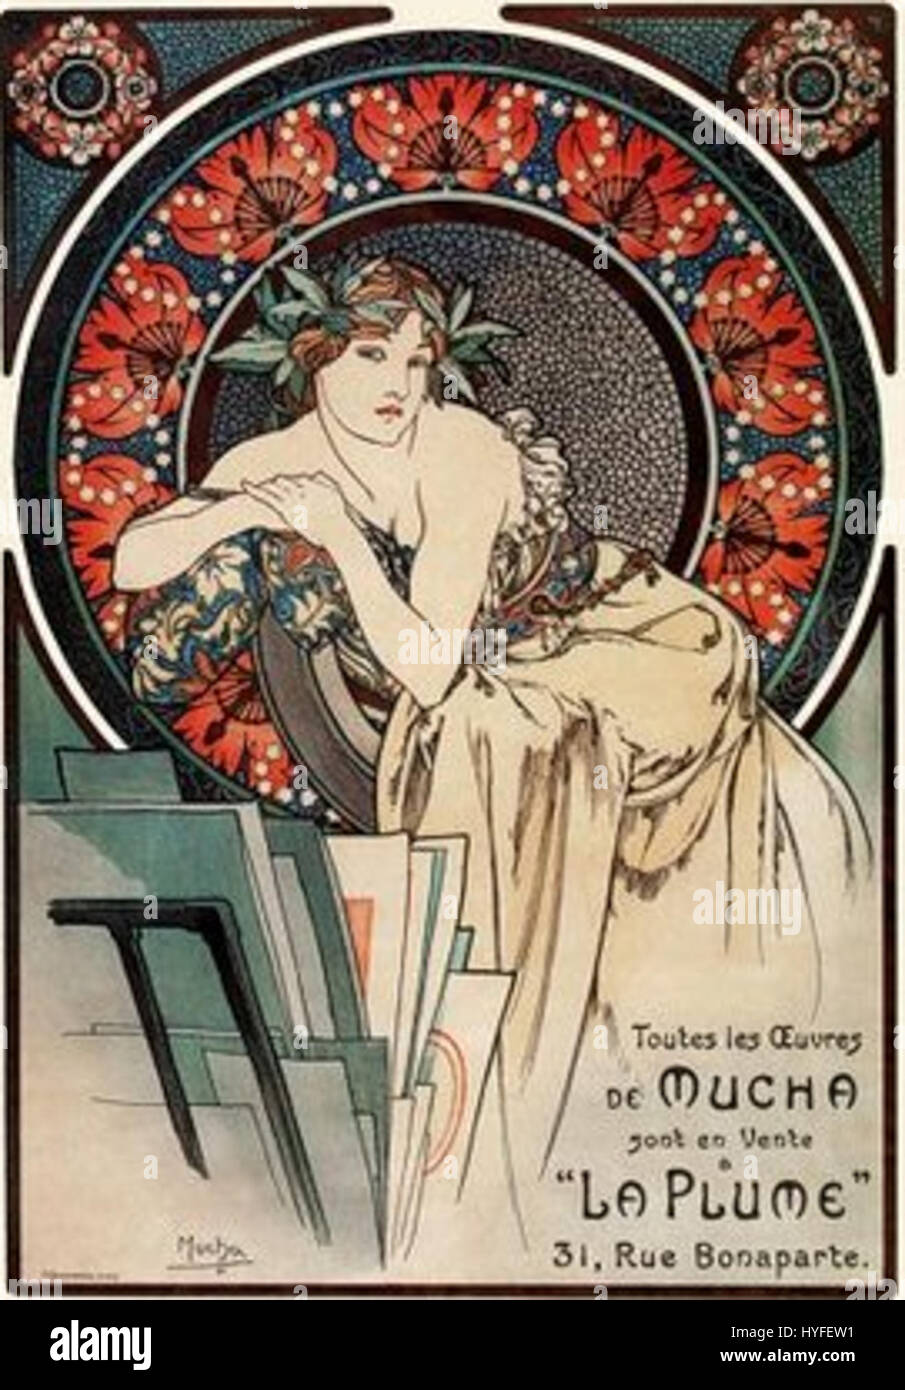 Mucha Woman with Pppies 1898 - Stock Image